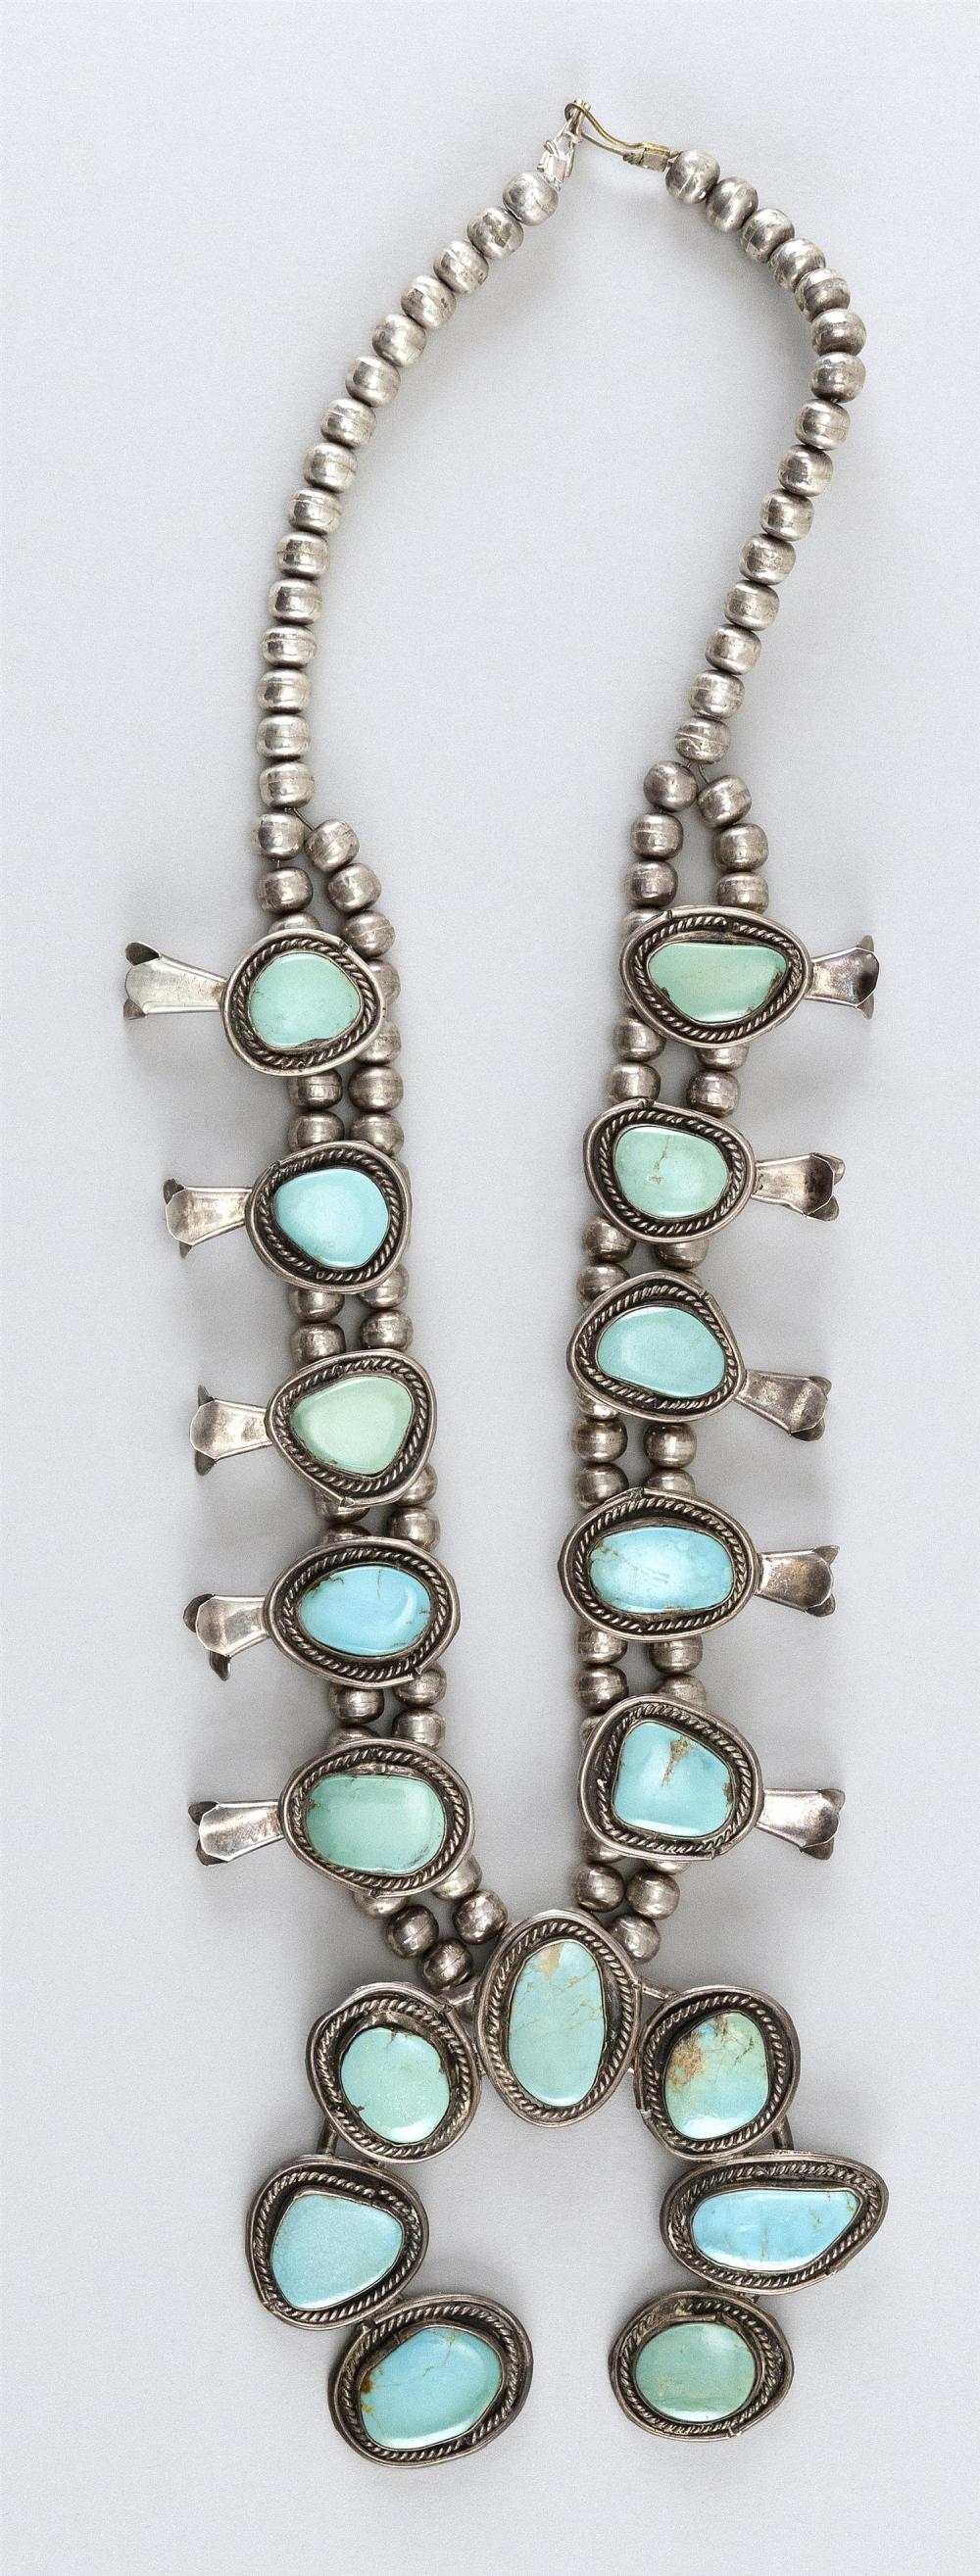 AMERICAN SOUTHWEST INDIAN SILVER AND TURQUOISE SQUASH BLOSSOM NECKLACE Hand-made, but lacking marks. Of typical form, the blossoms a...